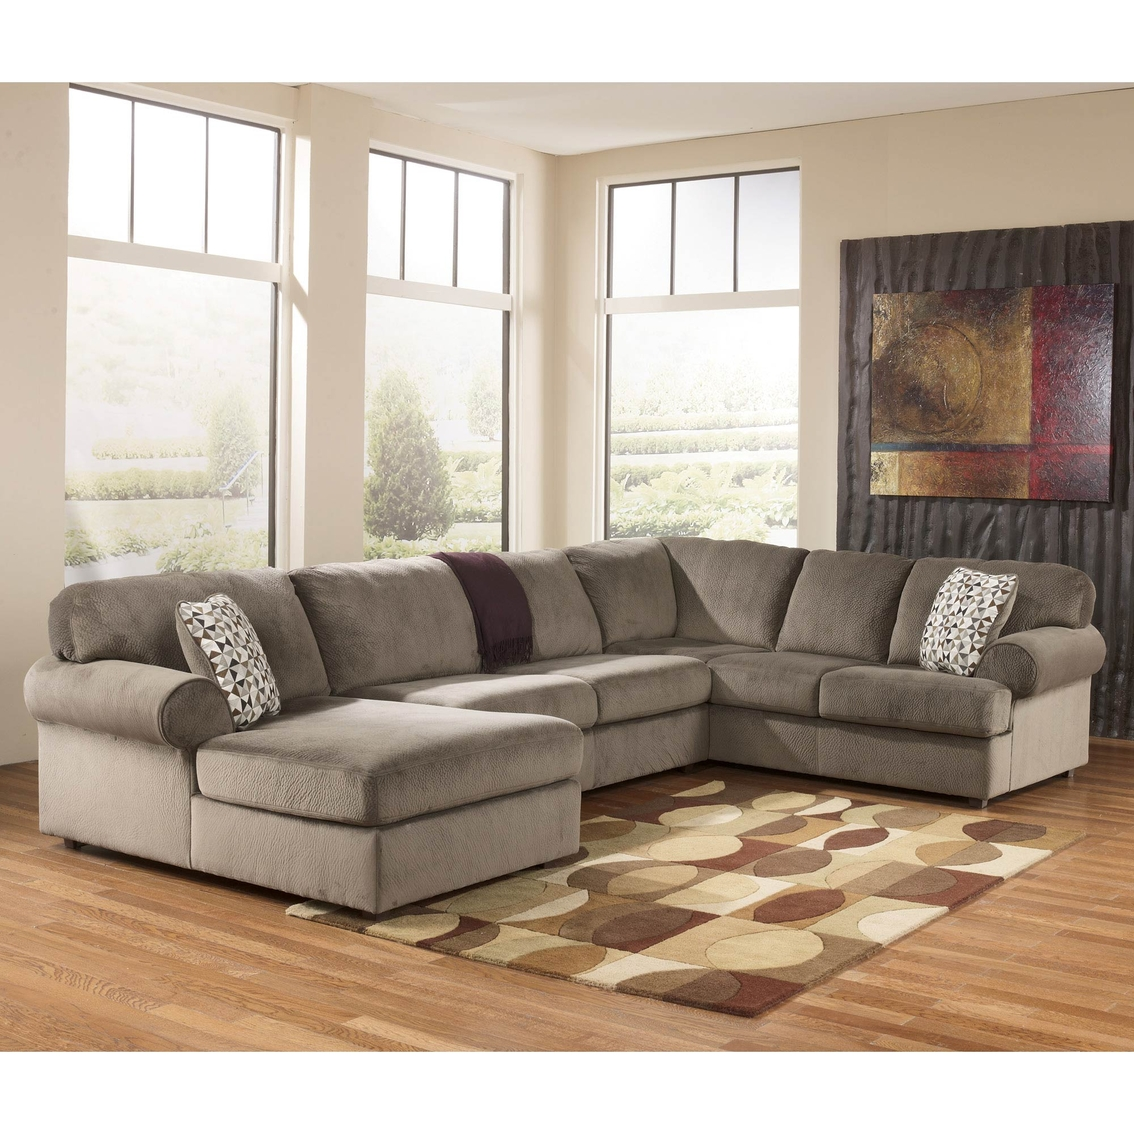 Signature Design By Ashley Jessa Place 3 Pc. Sectional Sofa ...